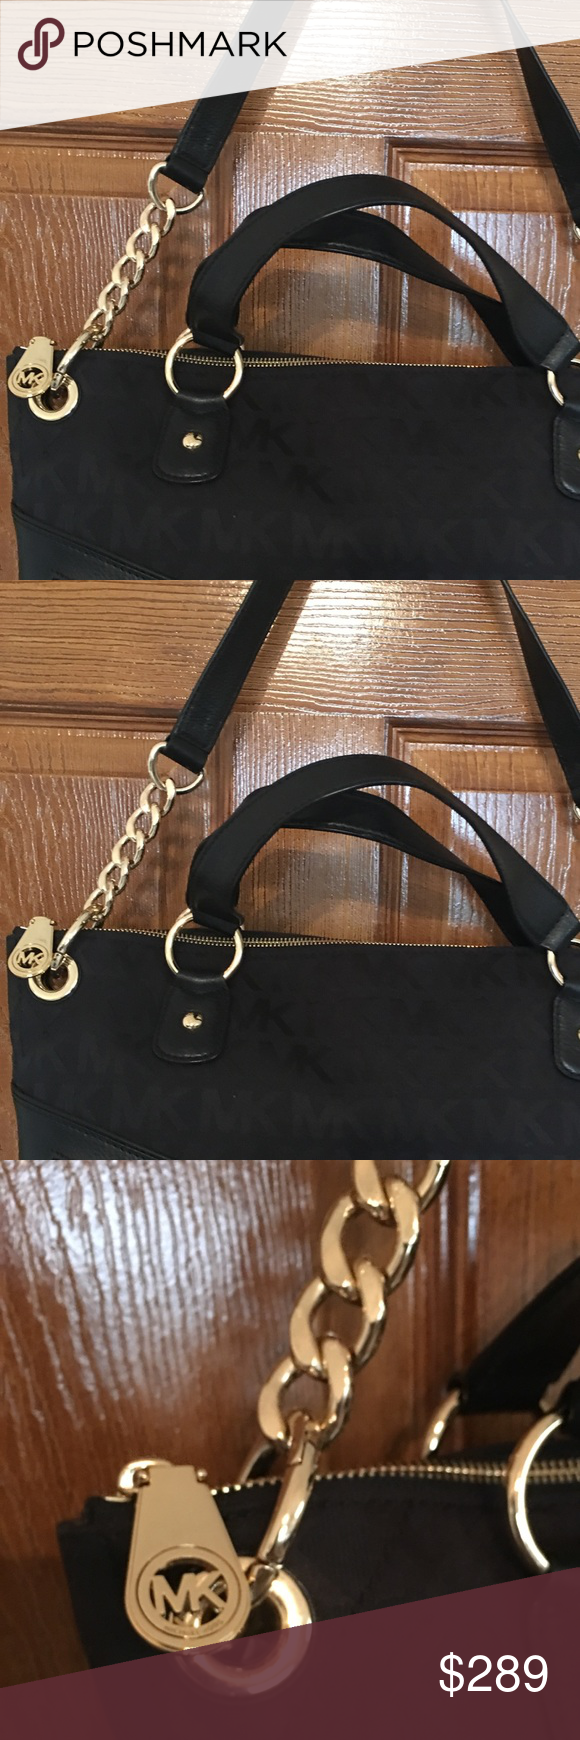 aa480f7aac74 Michael Kors large bag two way logo canvas Gorgeous MK authentic bag new  with tags. 2 way bag double strap. Beautiful ! Michael Kors Bags Shoulder  Bags